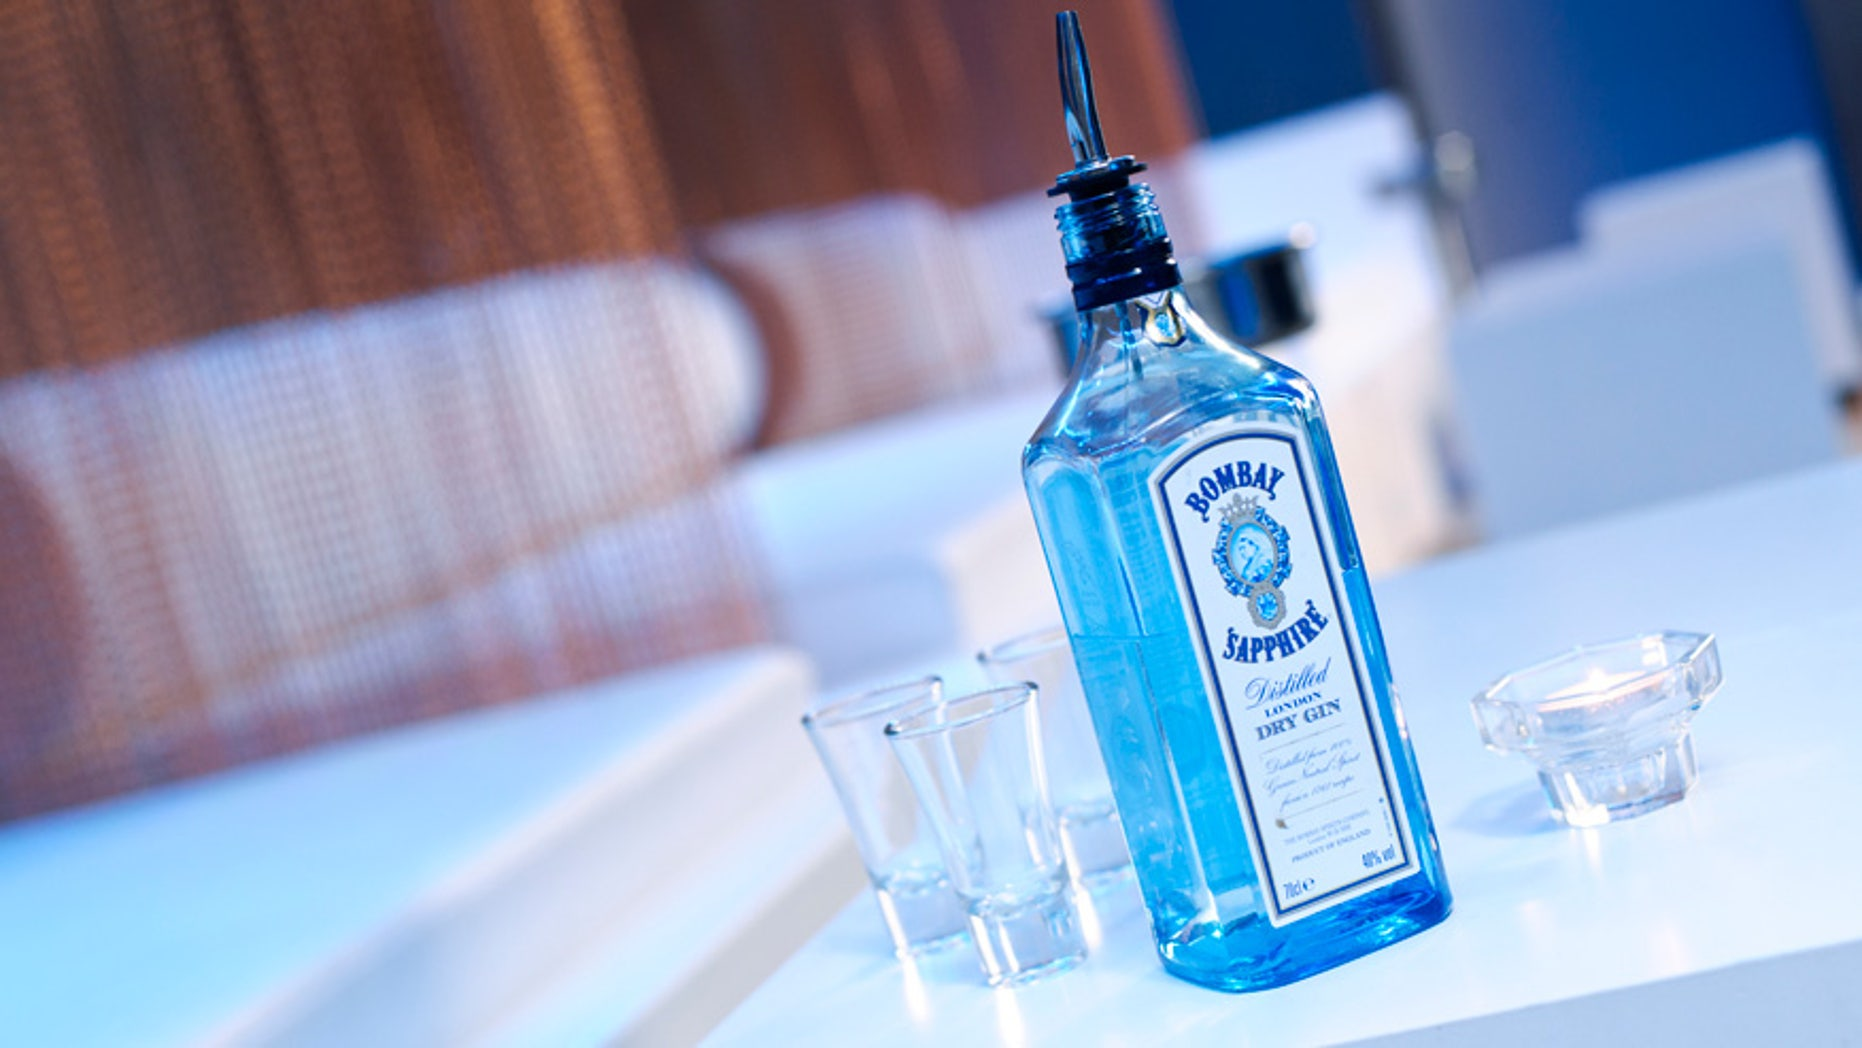 Certain bottles of Bombay Sapphire gin were shipped out with double the alcohol they were supposed to contain.